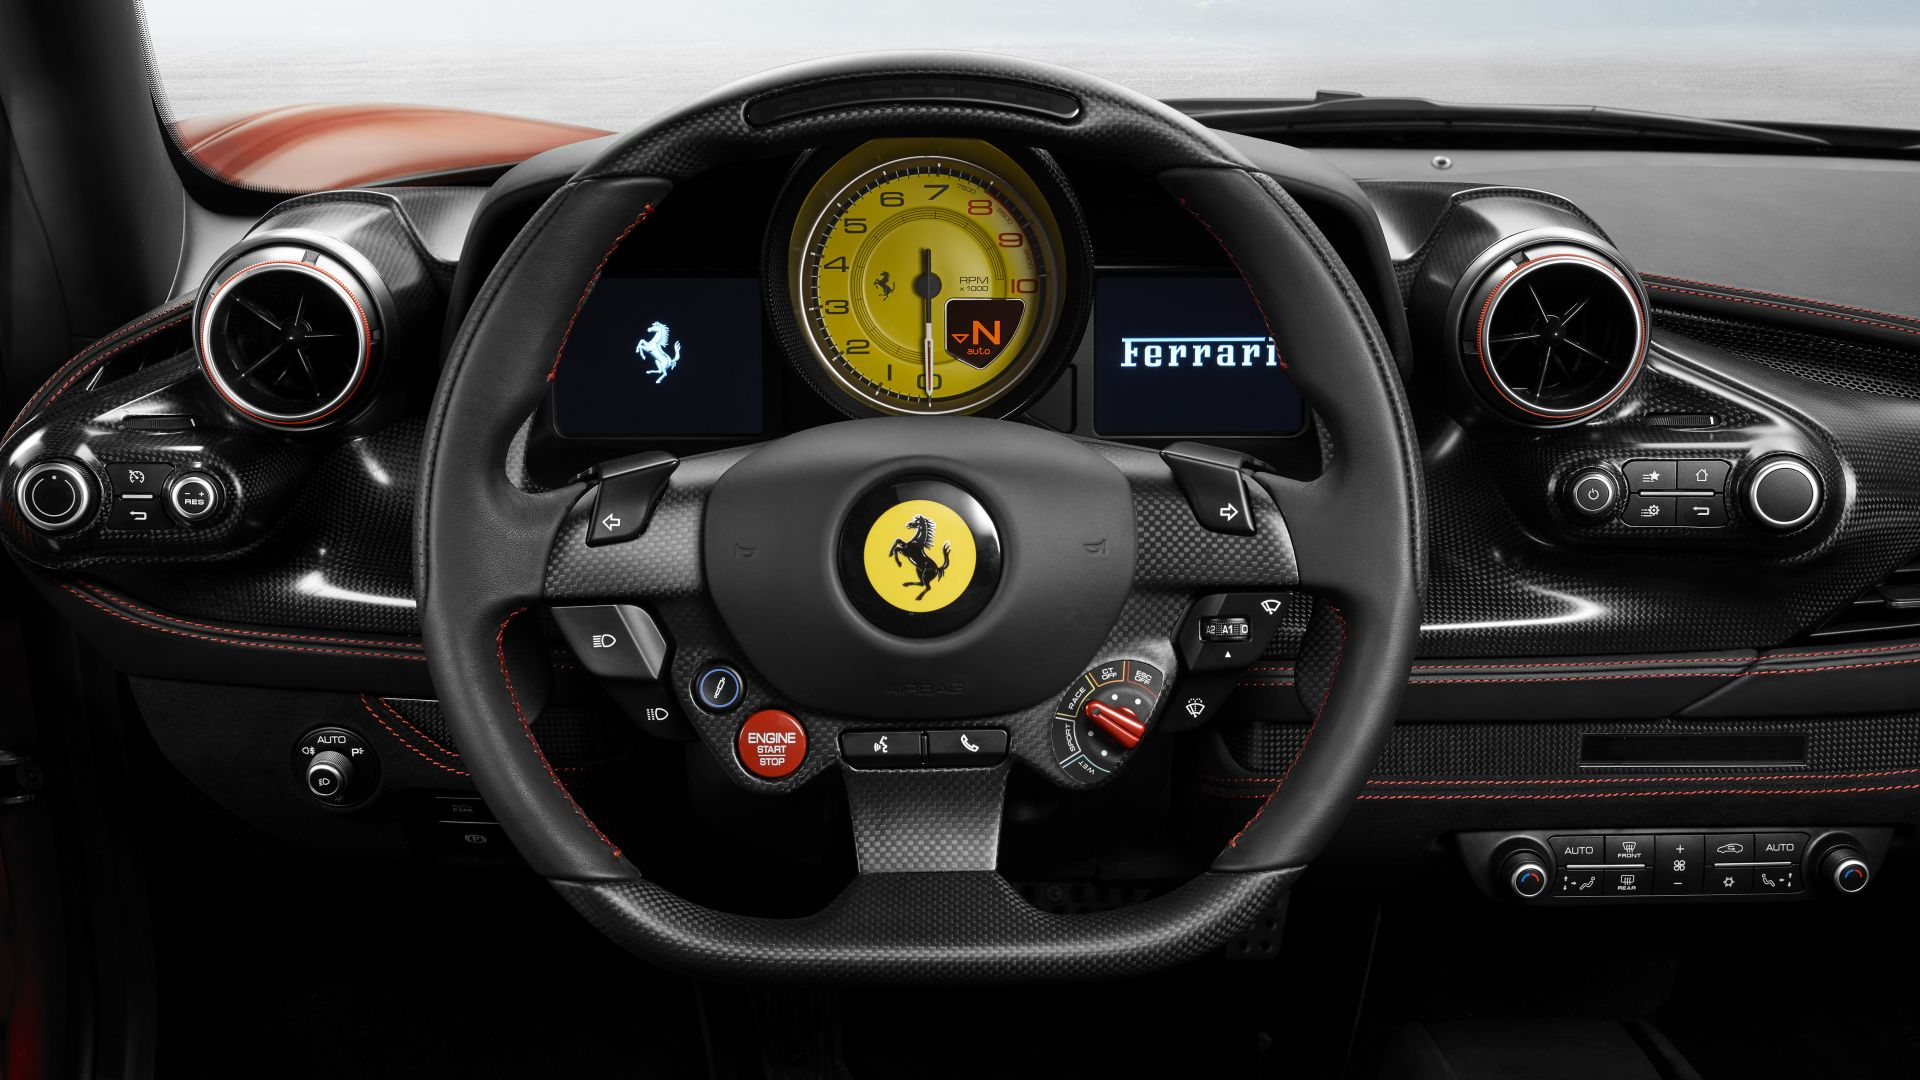 Ferrari F8 Tributo Car Interior Wallpaper HD 1920x1080